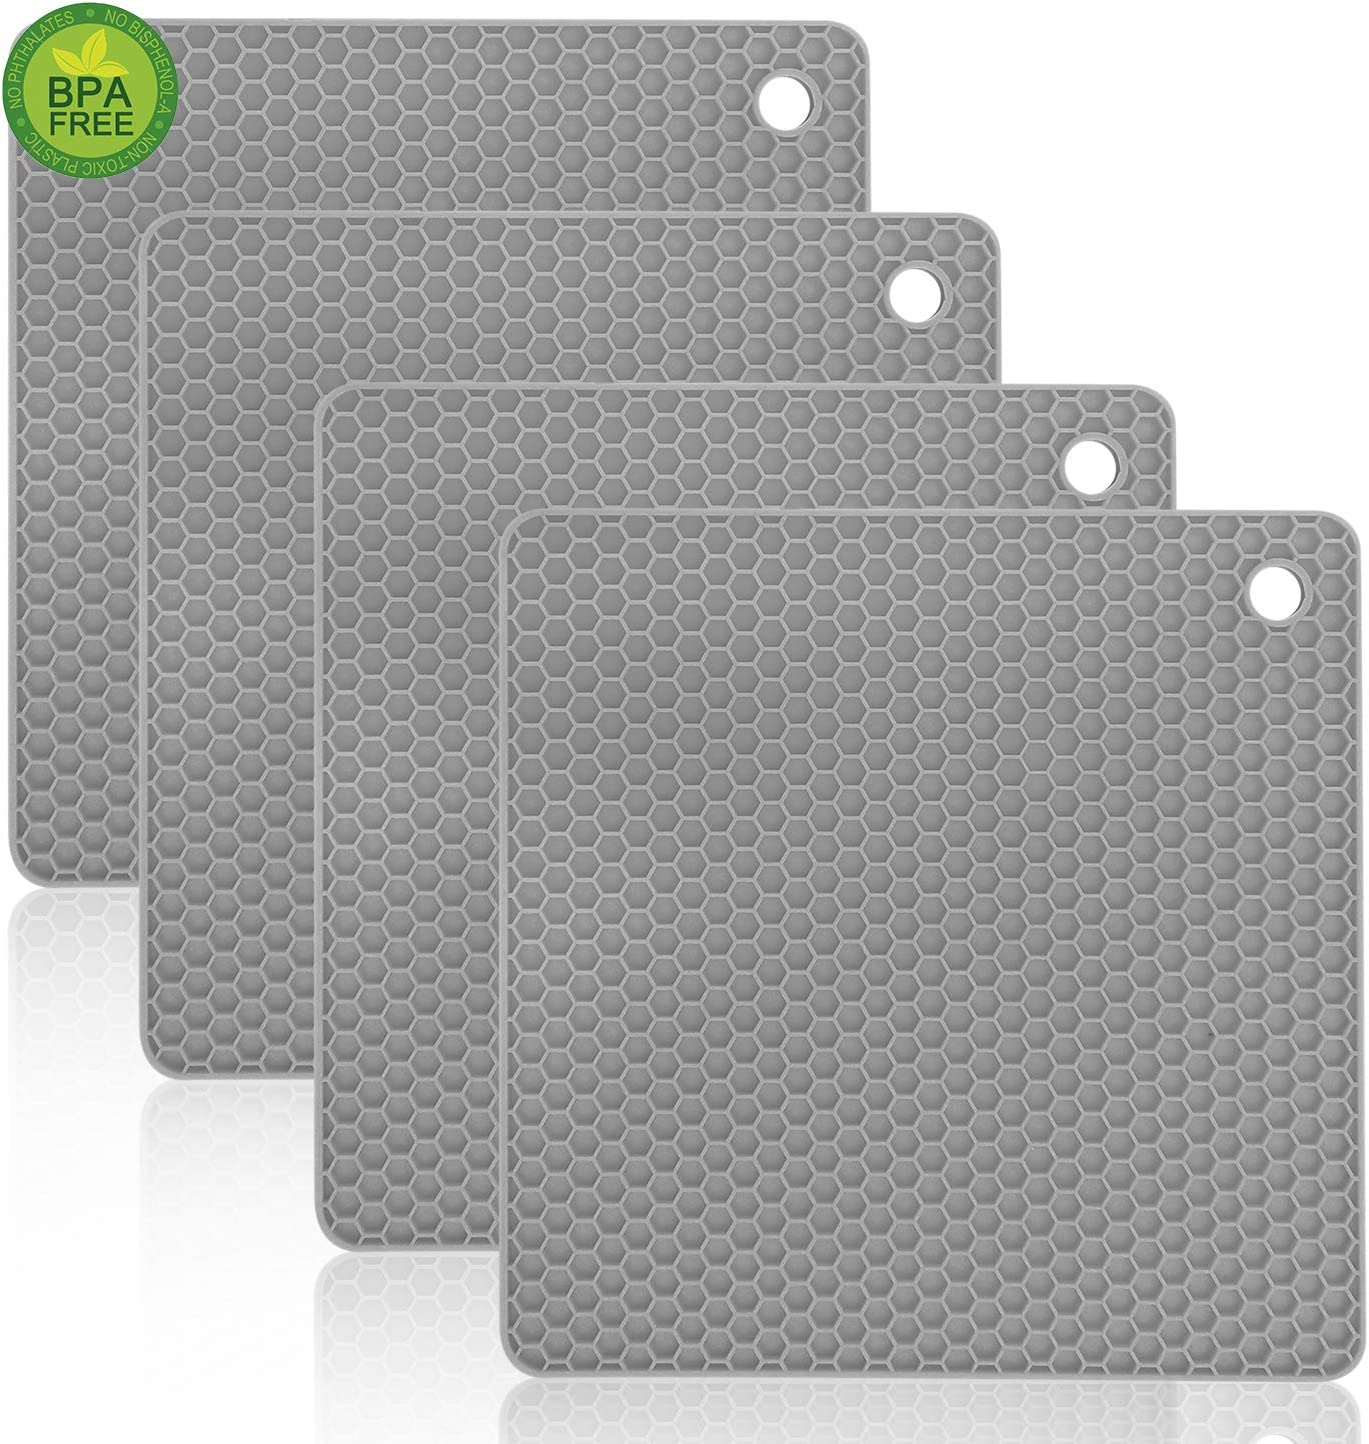 Walfos Silicone Trivet Mats - 4 Heat Resistant Pot Holders, Multipurpose Non-Slip Hot Pads for Kitchen Potholders, Hot Dishers, Jar Opener, Spoon Holder, Food Grade Silicone & BPA Free (Square)